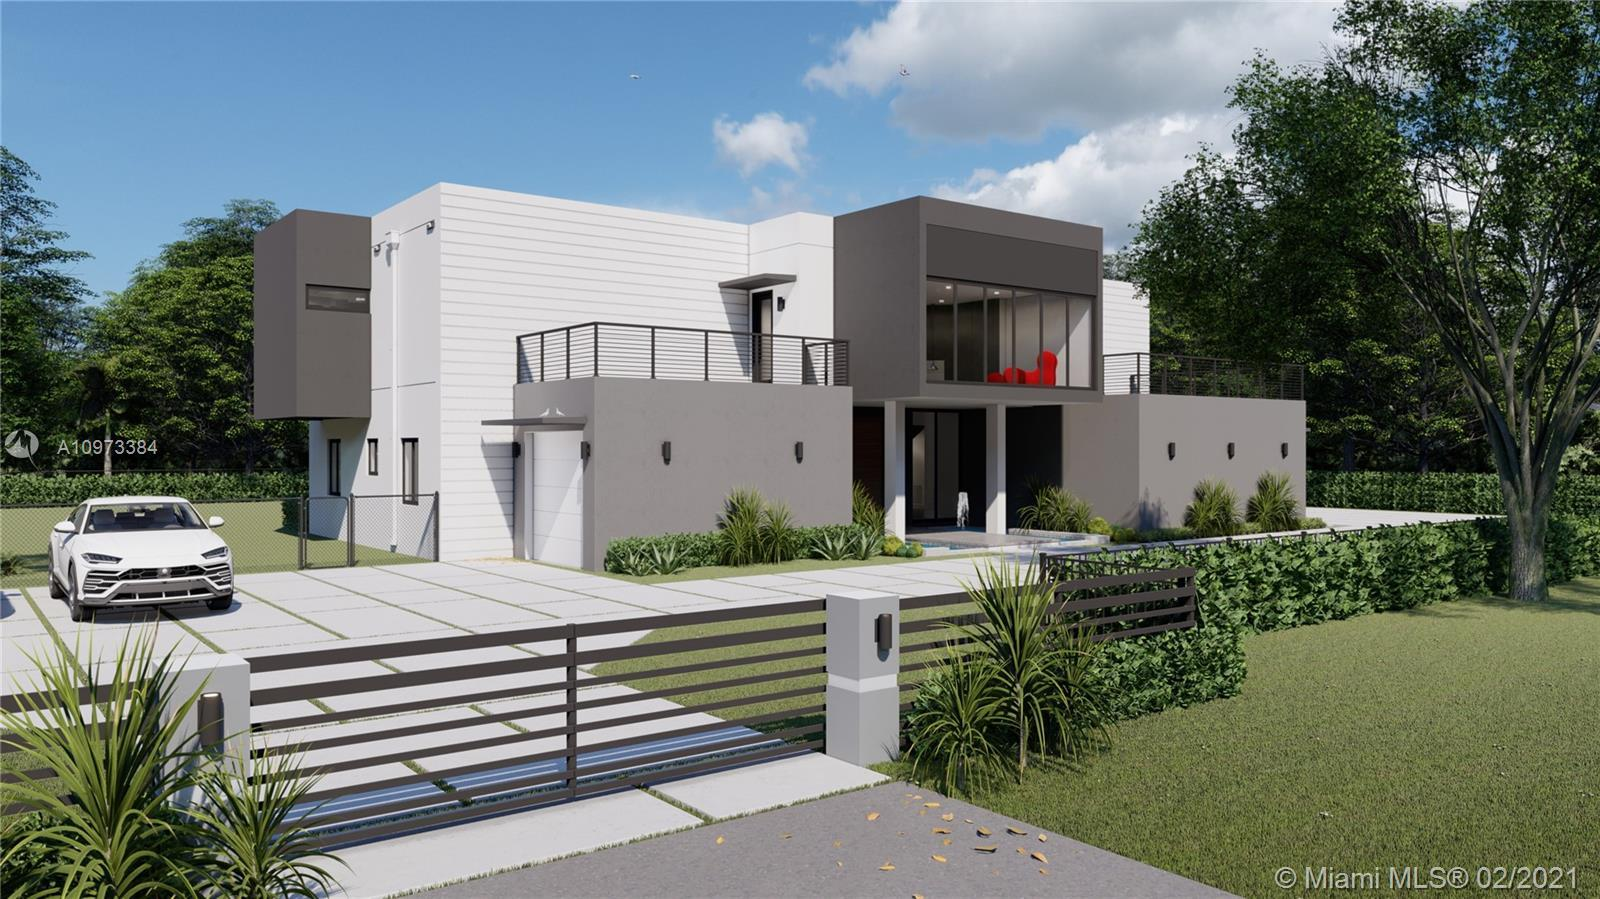 Modern Masterpiece designed by ECO Modern Custom Homes. This 2-story is being constructed in a cozy